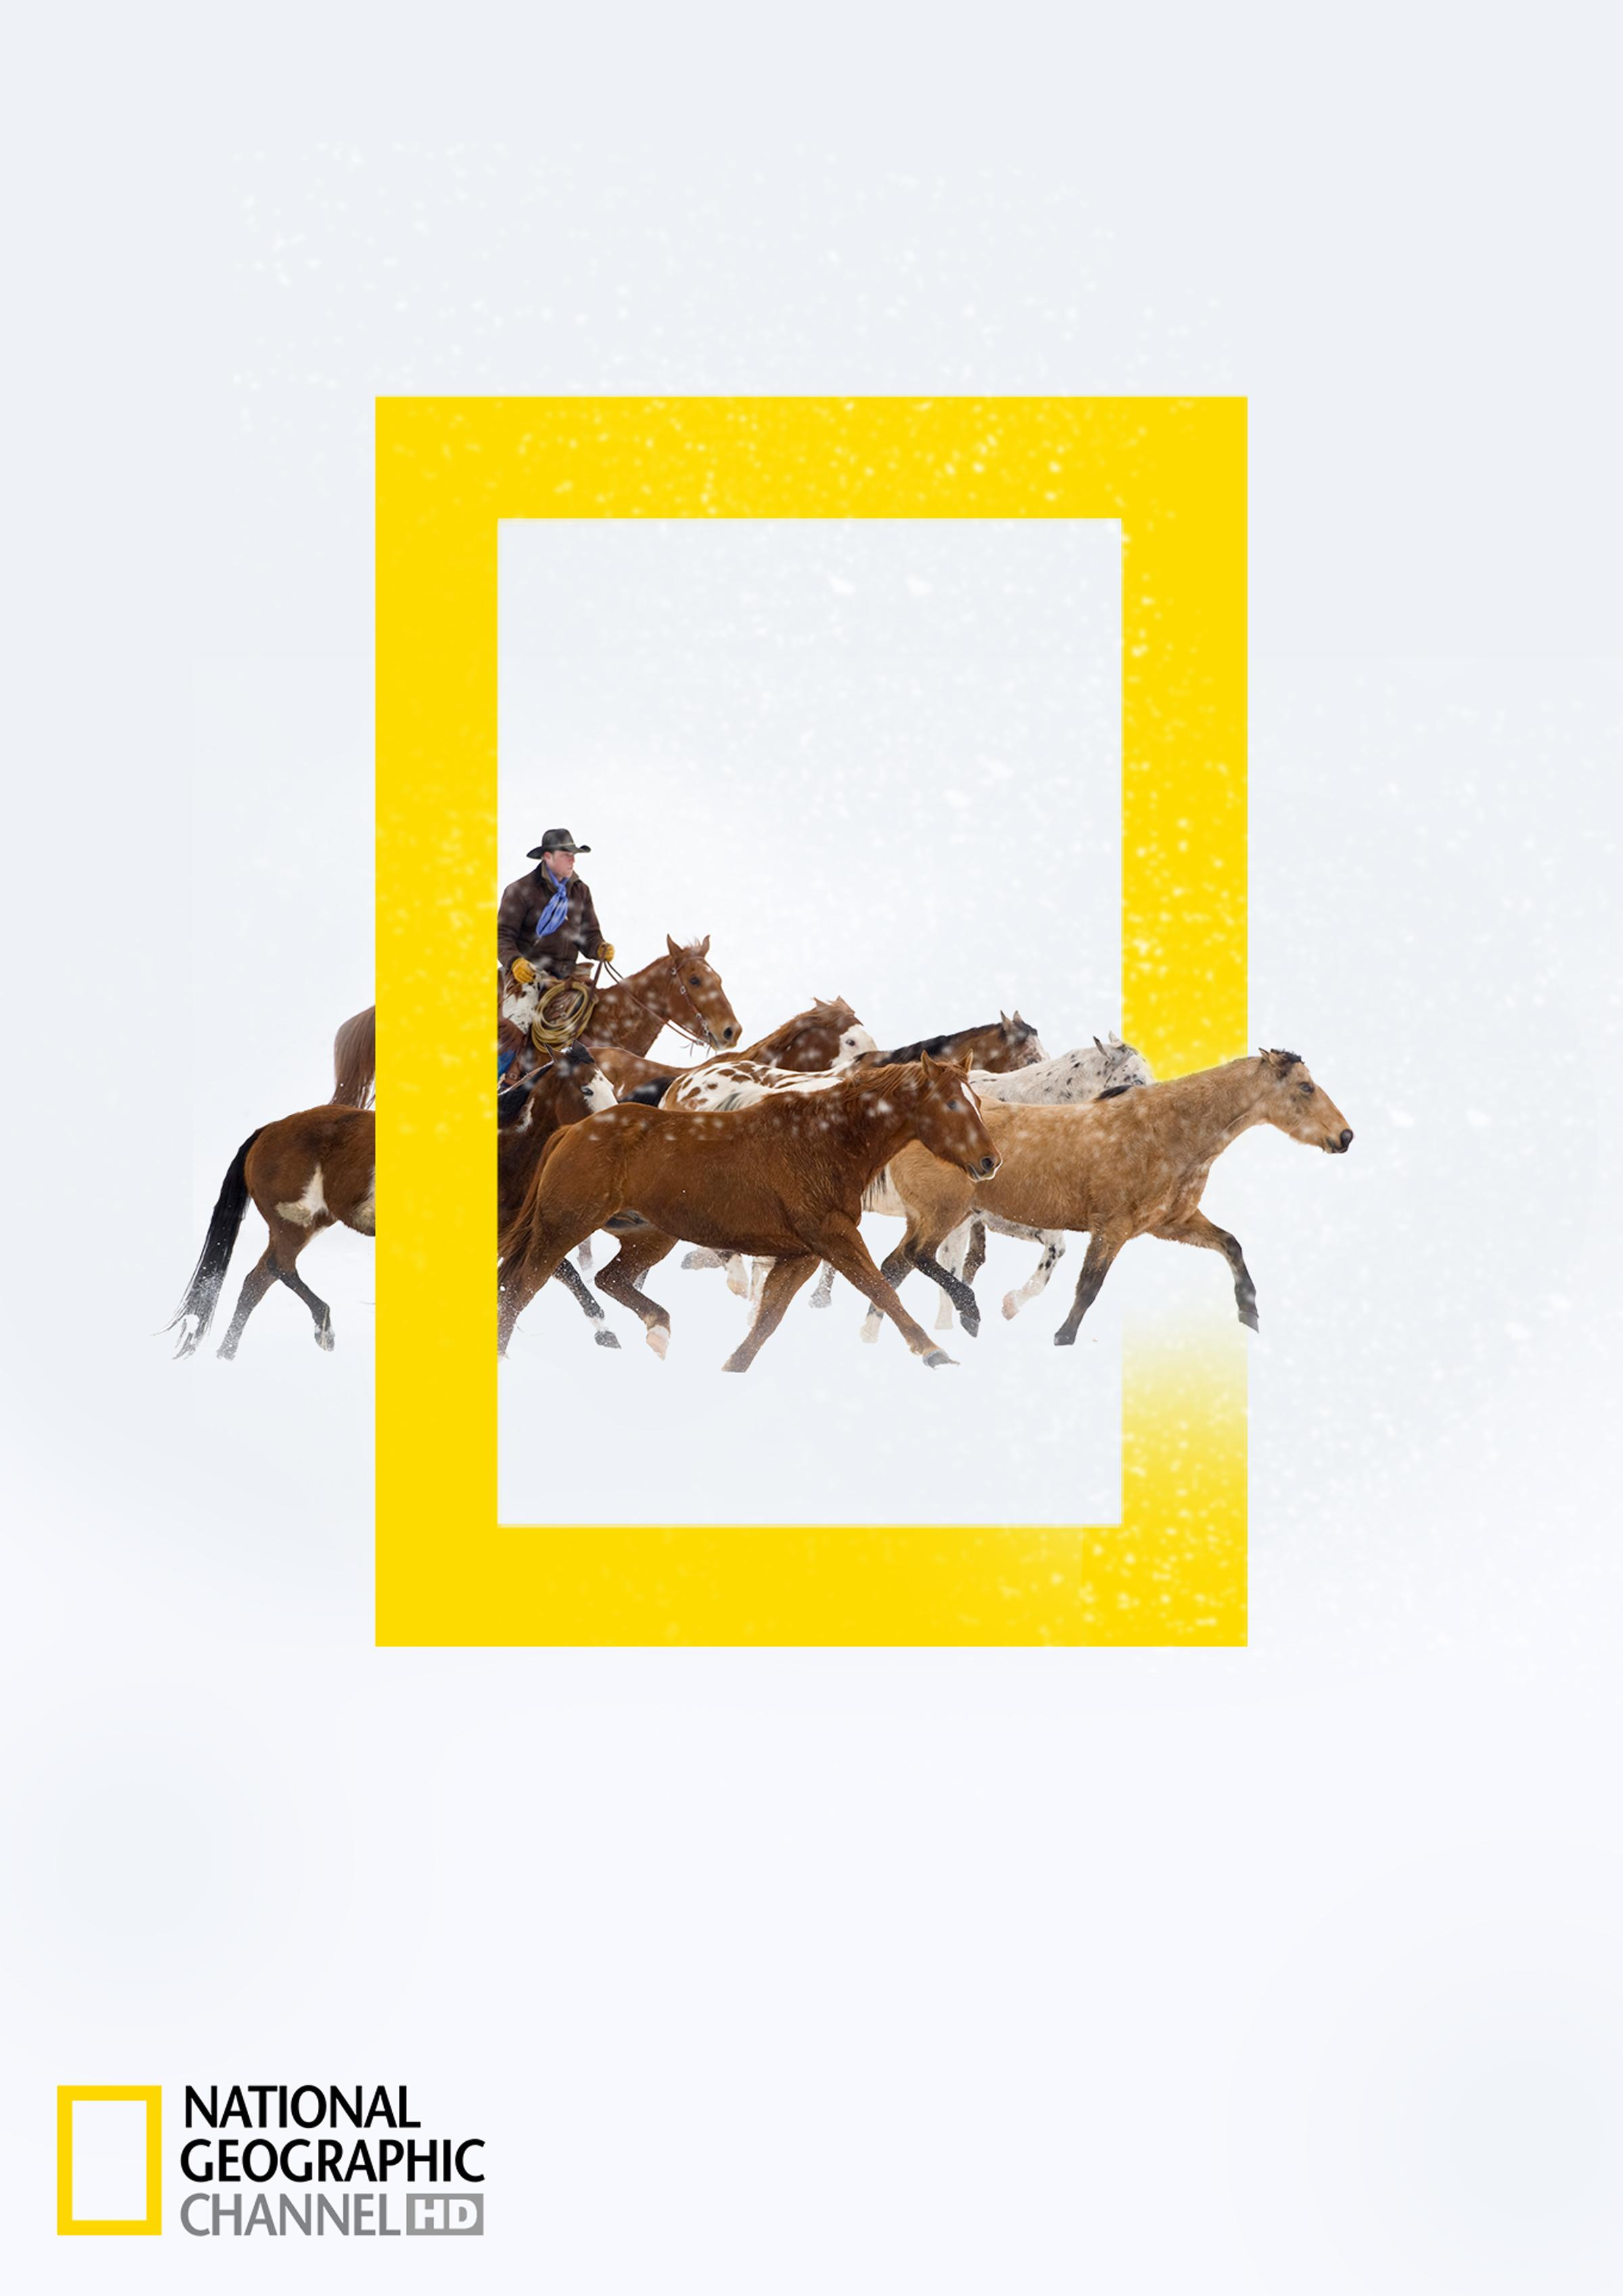 National Geographic Print Ad - National Geographic HD Channel winter programs - Horses